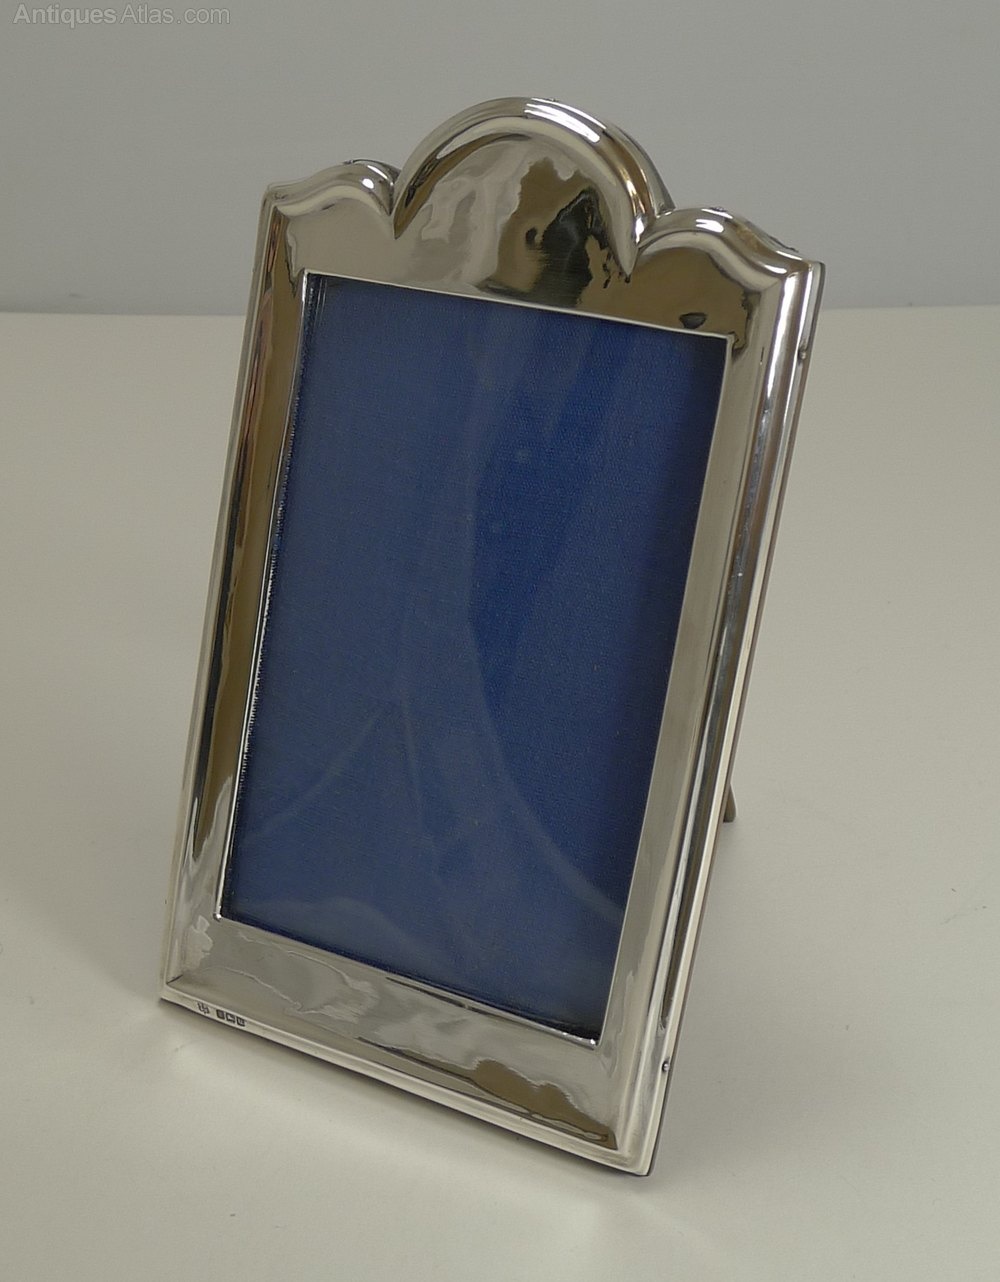 Antiques Atlas - Antique English Sterling Silver Photograph Frame